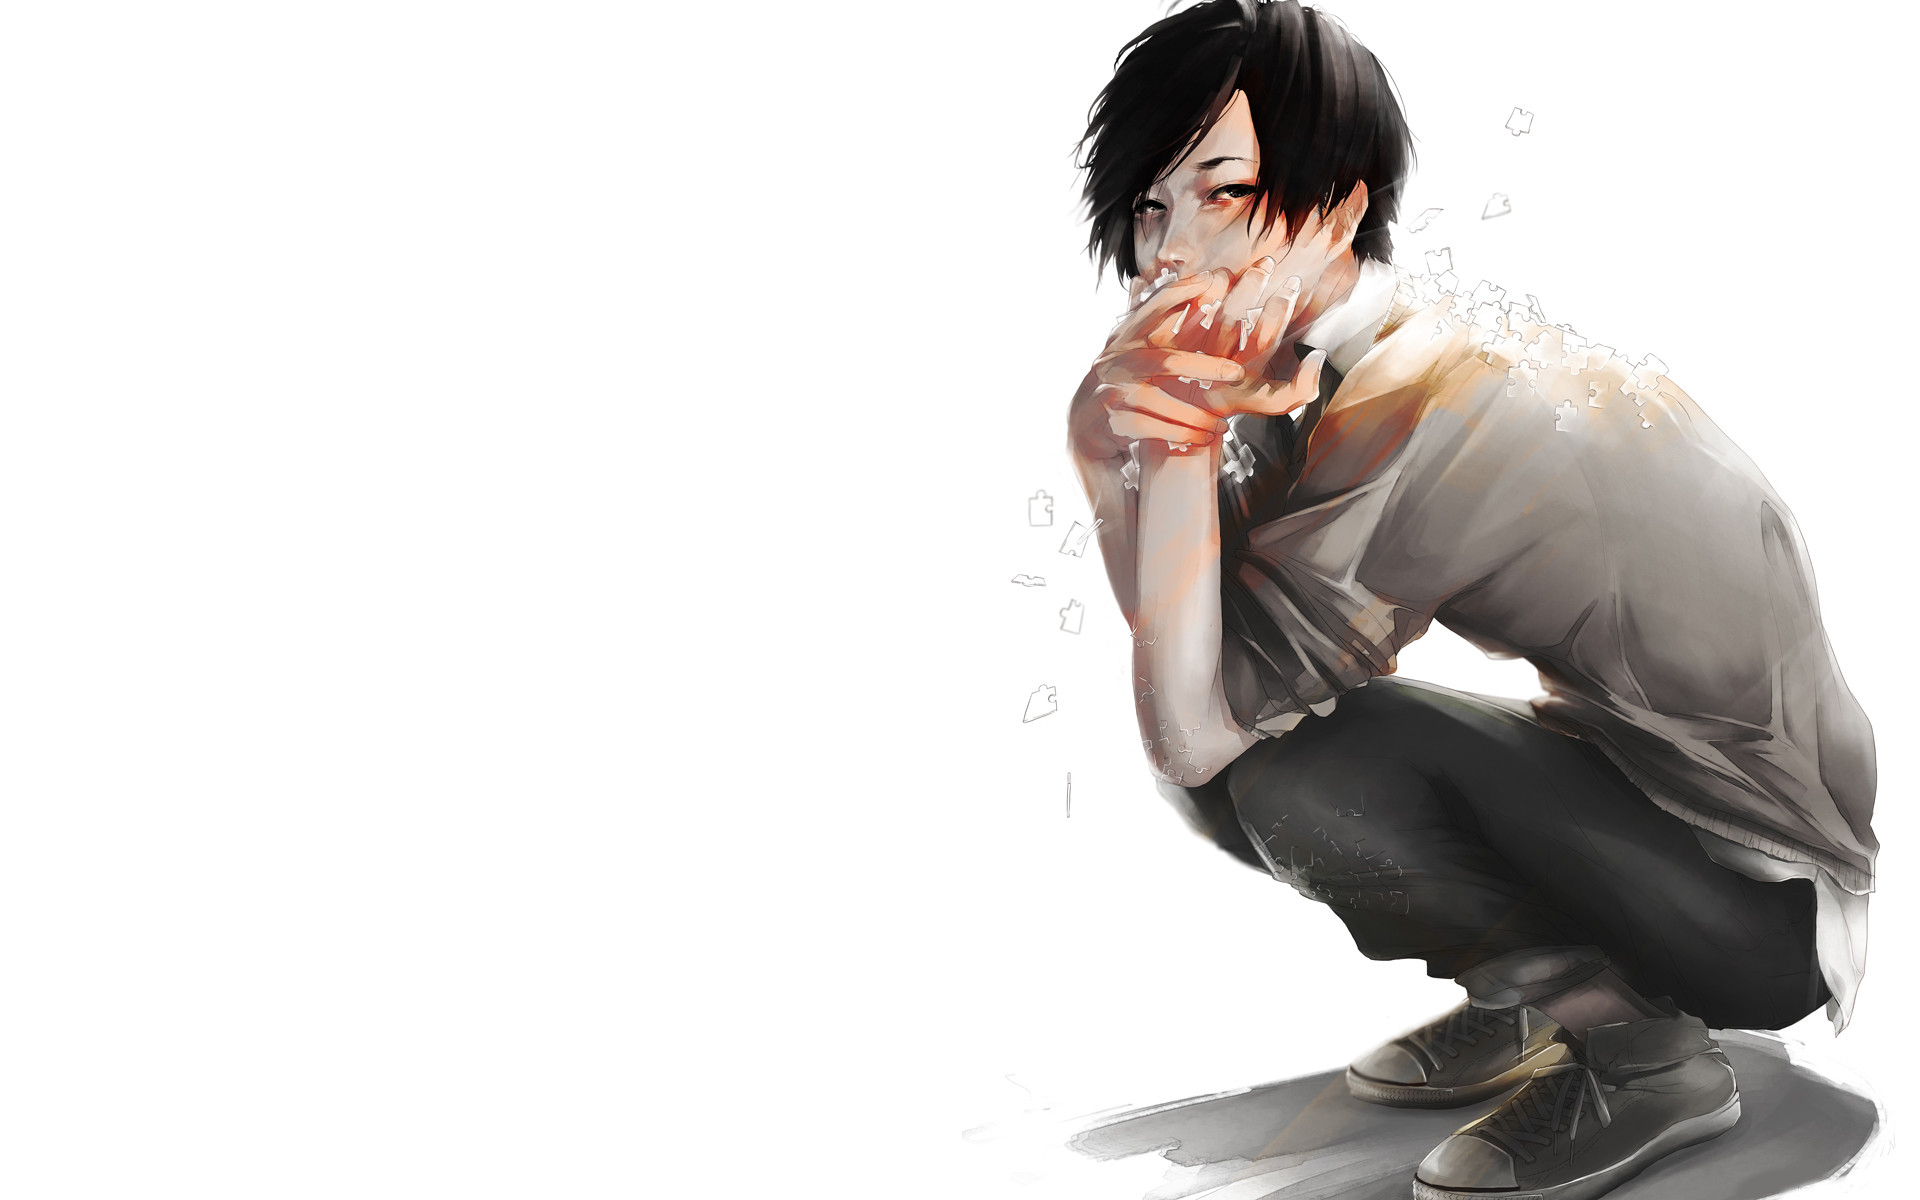 Sad Anime Boy Wallpapers 67 Background Pictures